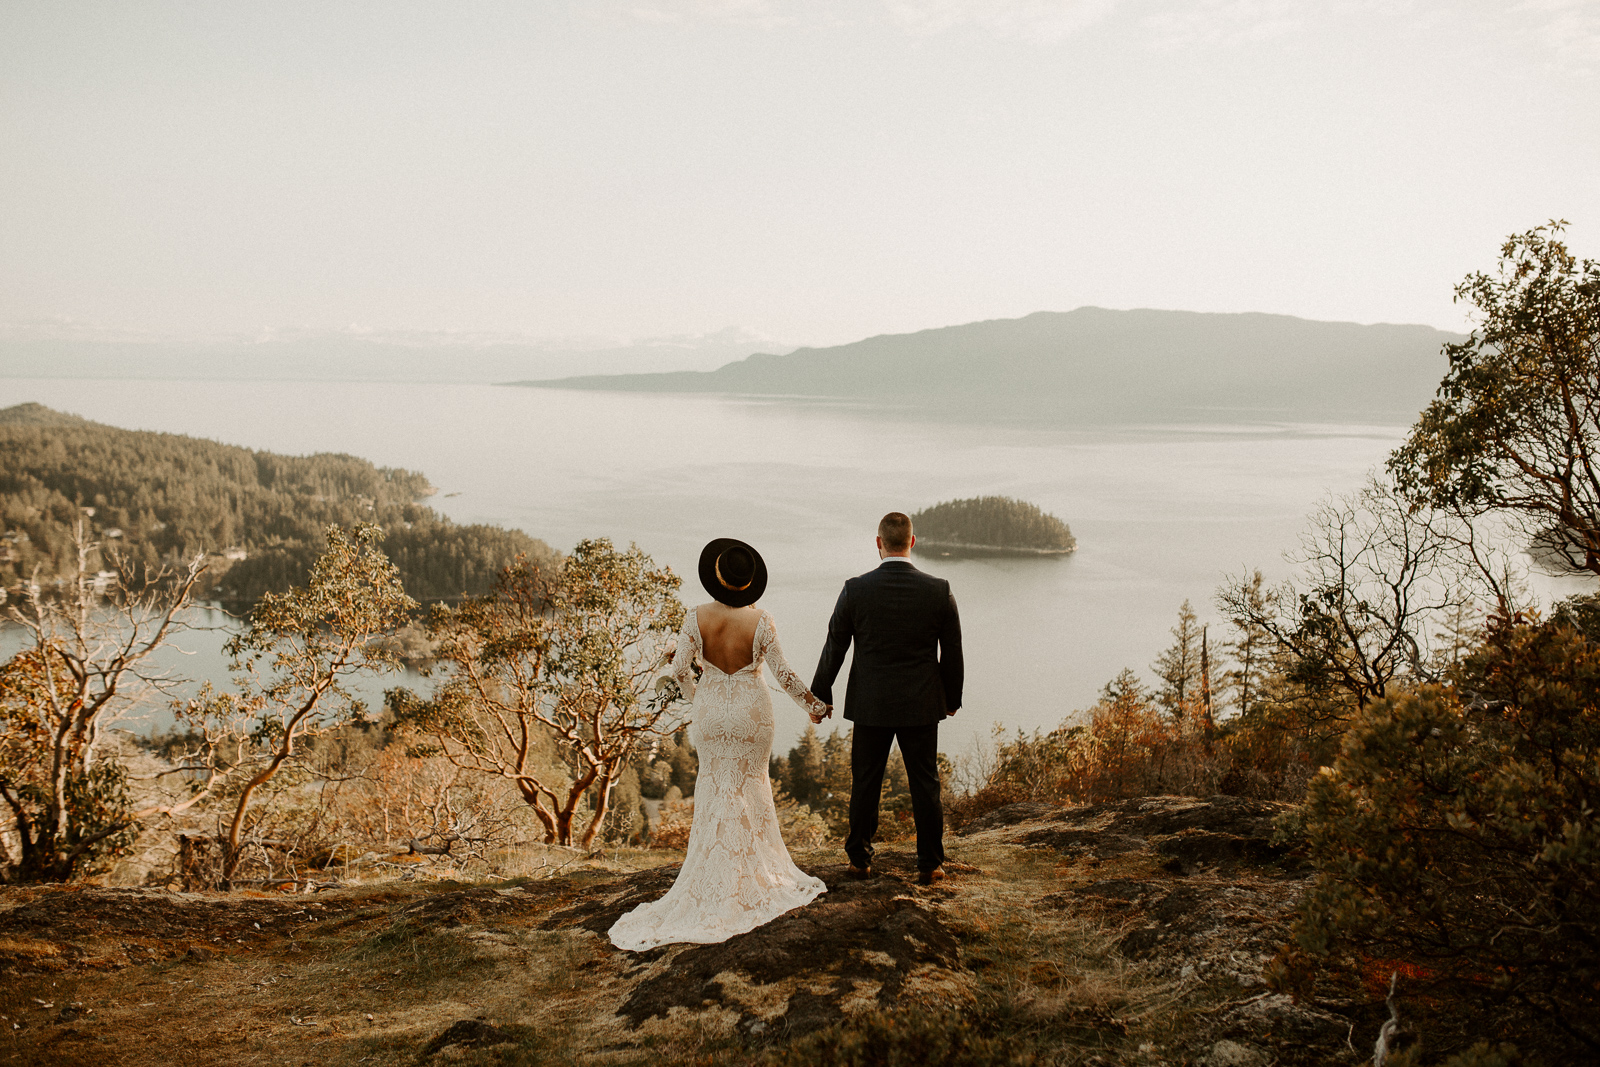 Luke Lambertson Photo_BritishColumbia_Canada_AdventurousCouple_Elopement_IMG-7929.jpg